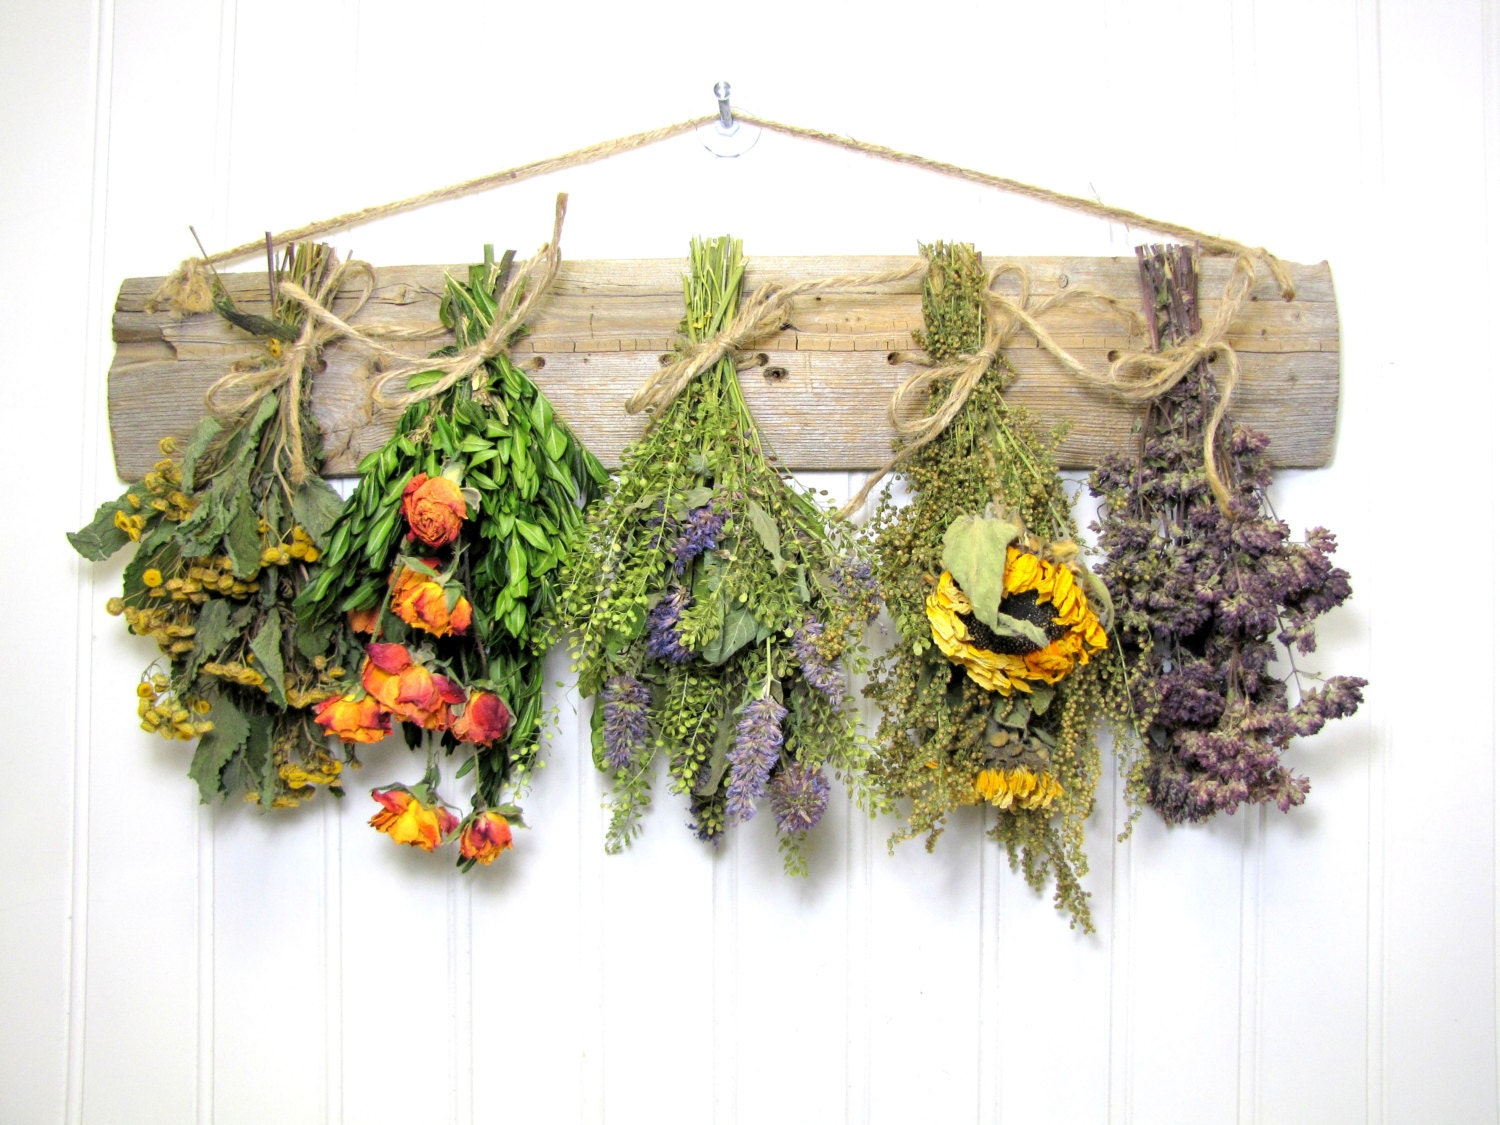 Fragrant Dried Herb Rack Kitchen Decor Dried Floral